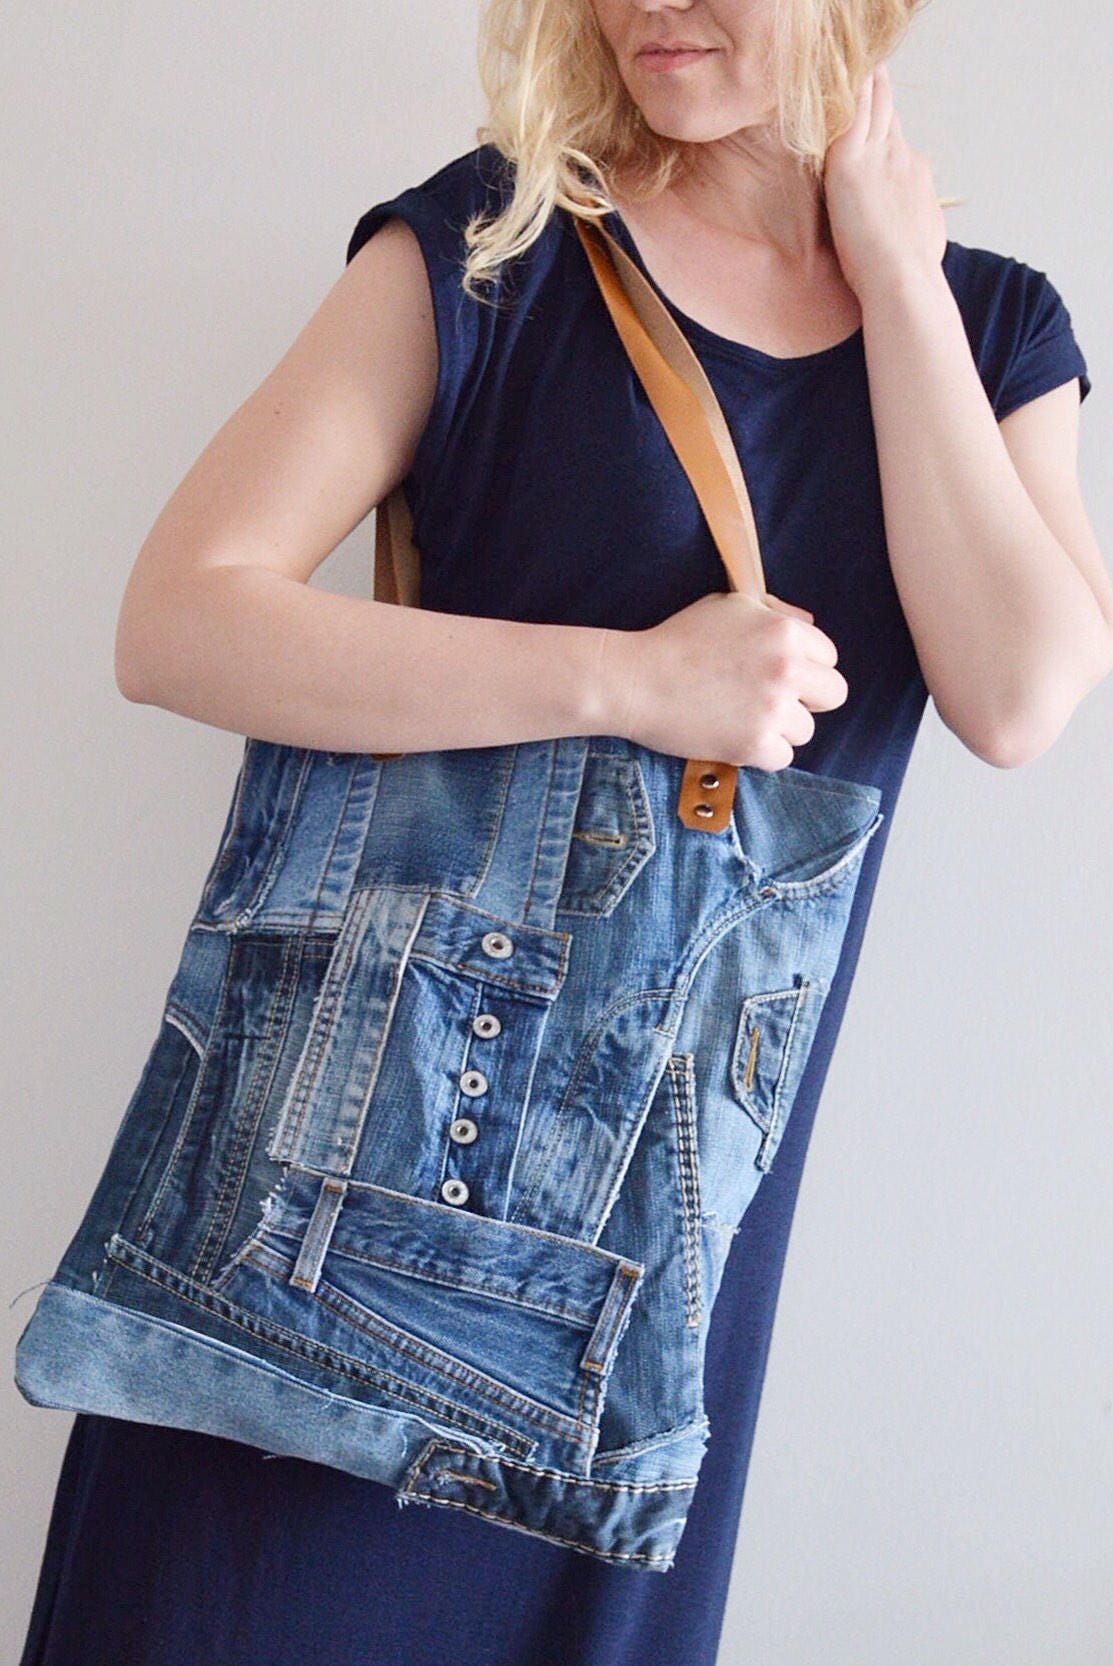 GEOMETRIC denim tote bag with a zipper  yellow lining  recycled denim  upcycled denim bag  casual handbag for women.